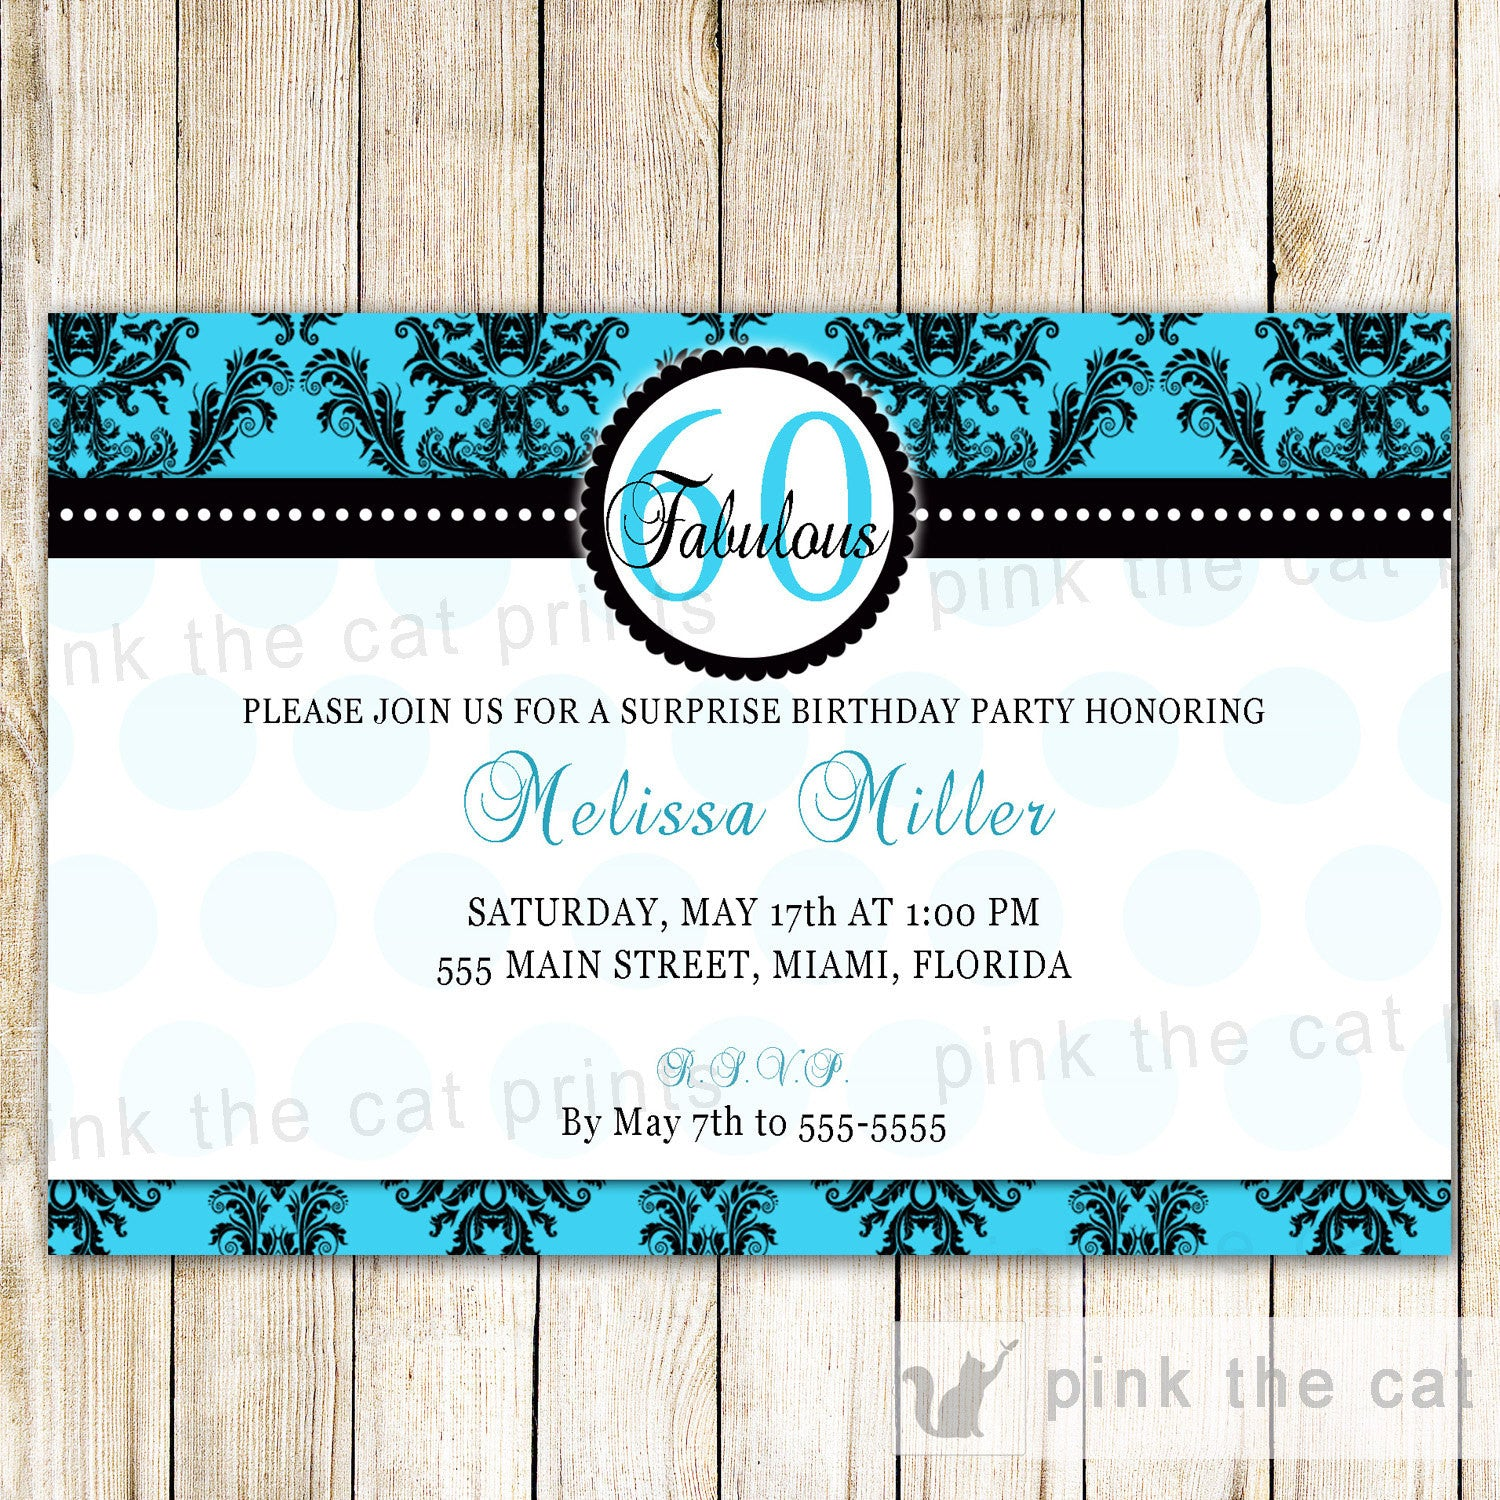 Turquoise Black Adult Birthday Party Invitation – Pink The Cat